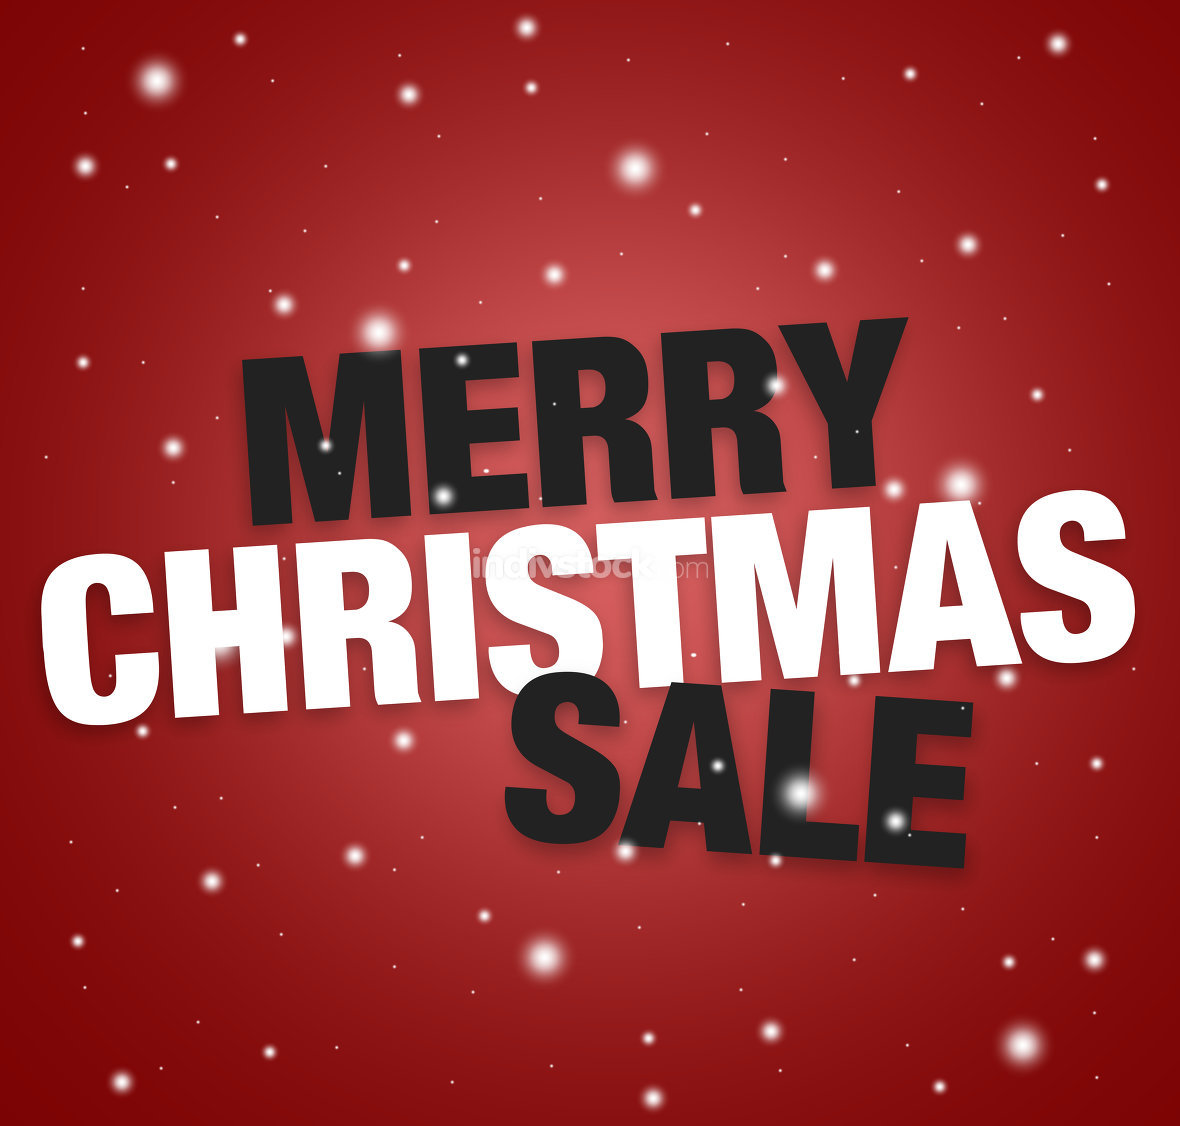 merry christmas sale red